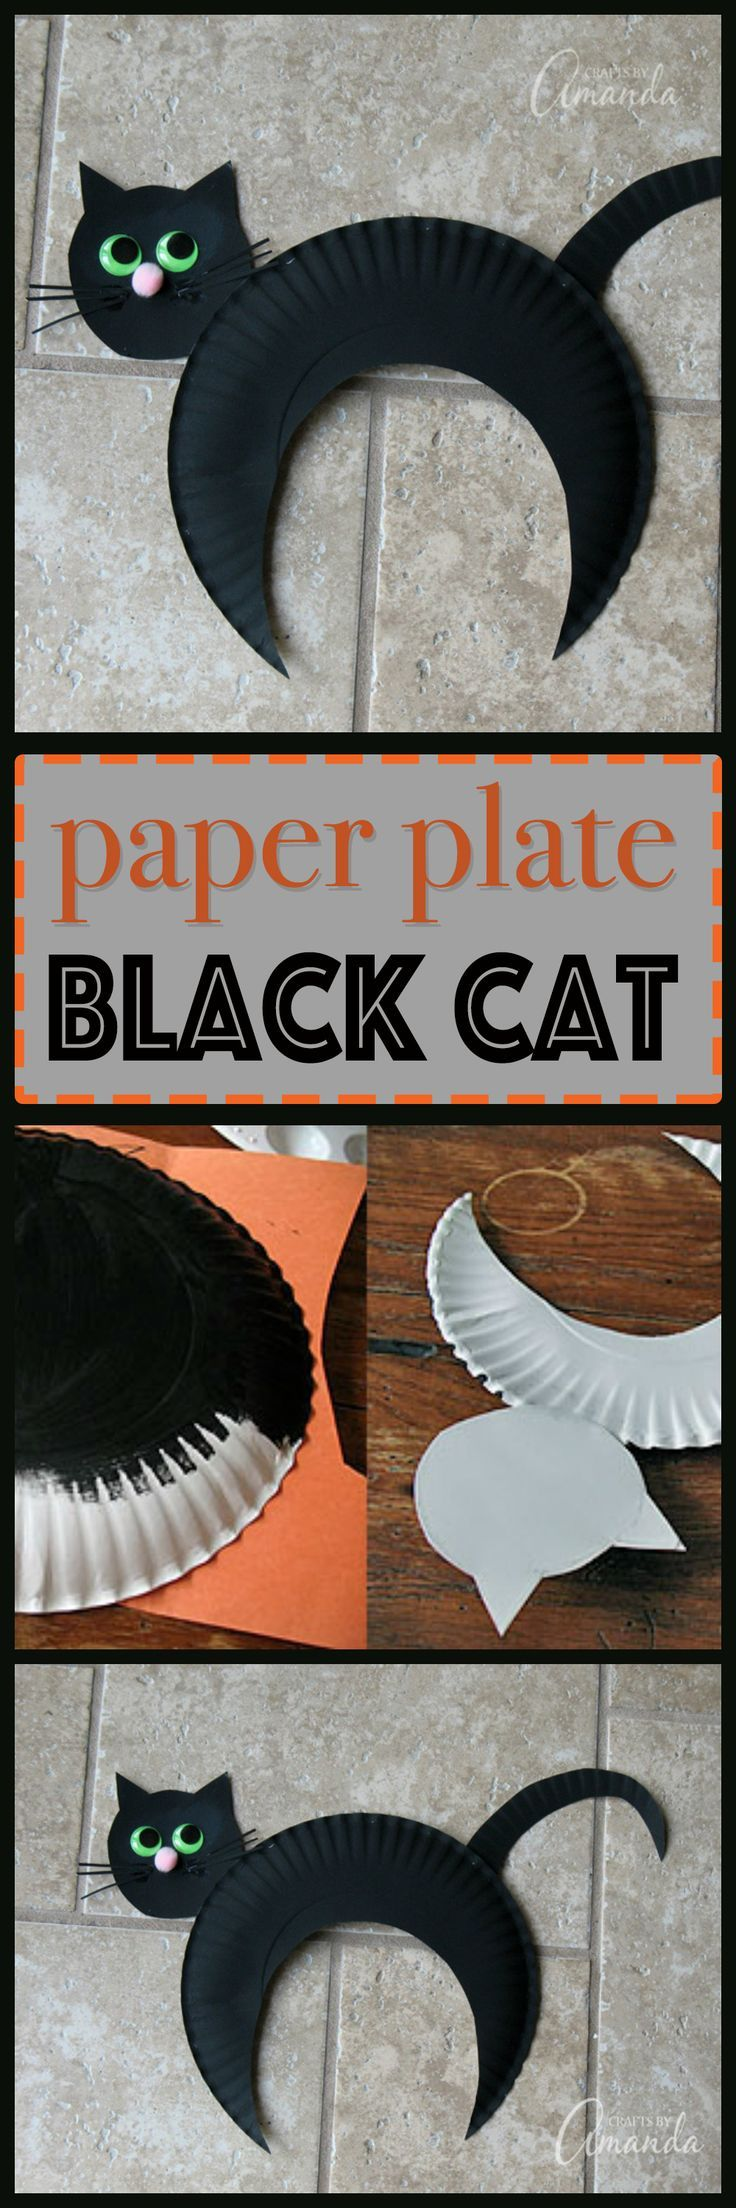 I created this paper plate black cat for kids because as far as Halloween characters go, I think the black cat is commonly overlooked. Free pattern!